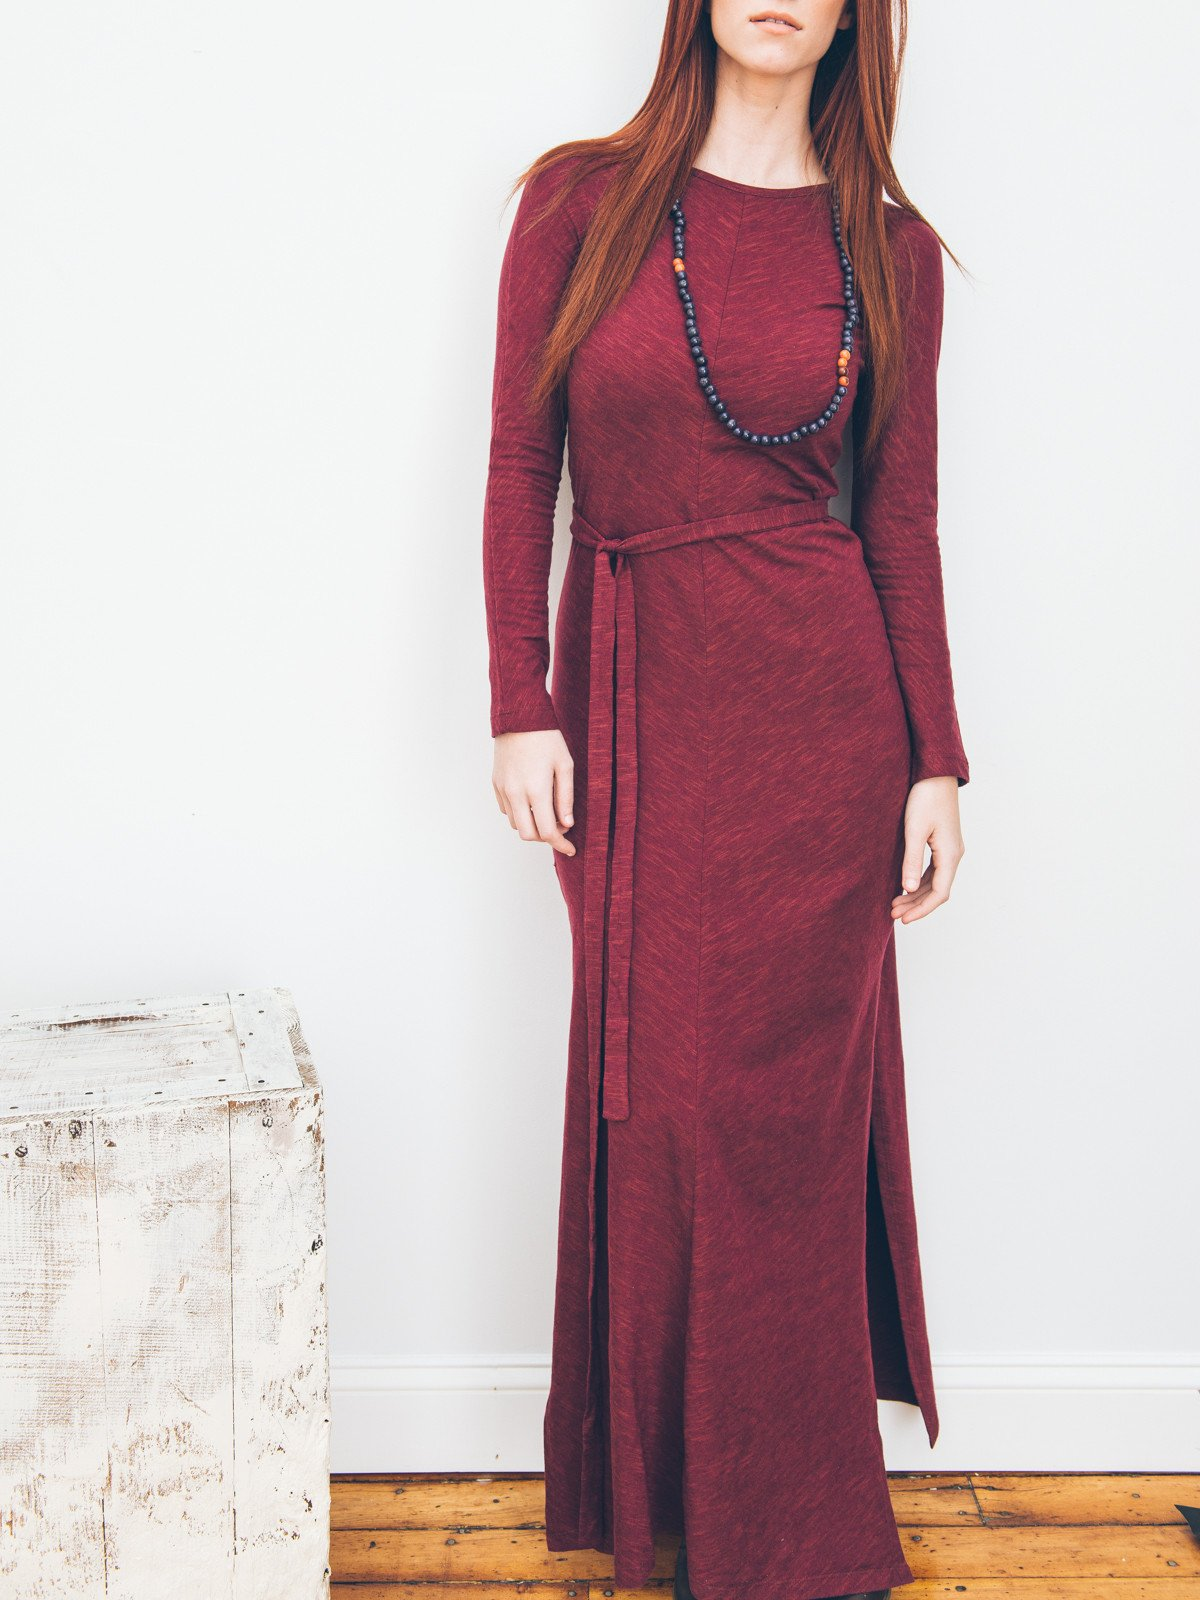 A burgundy maxi from Ash & Rose will have you feeling comfy and looking regal.  Cost: $70 USD